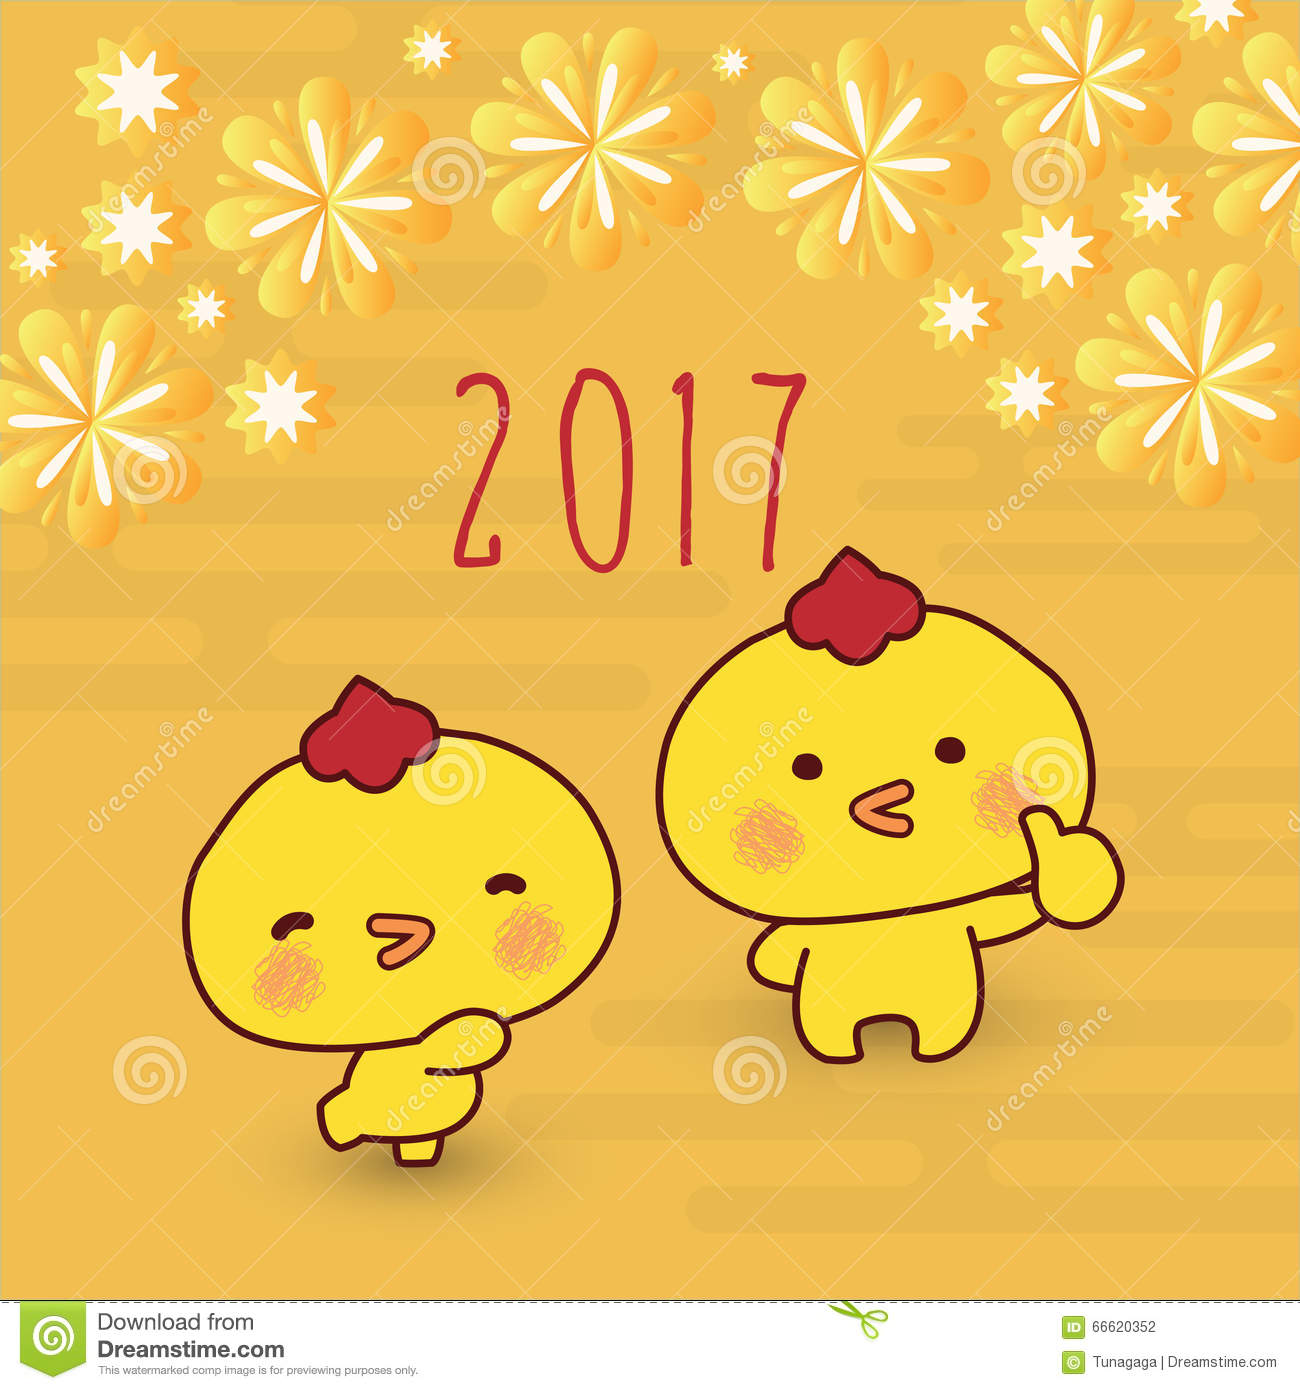 2017 rooster chinese new year greeting card design stock vector 2017 rooster chinese new year greeting card design animal blossom kristyandbryce Images